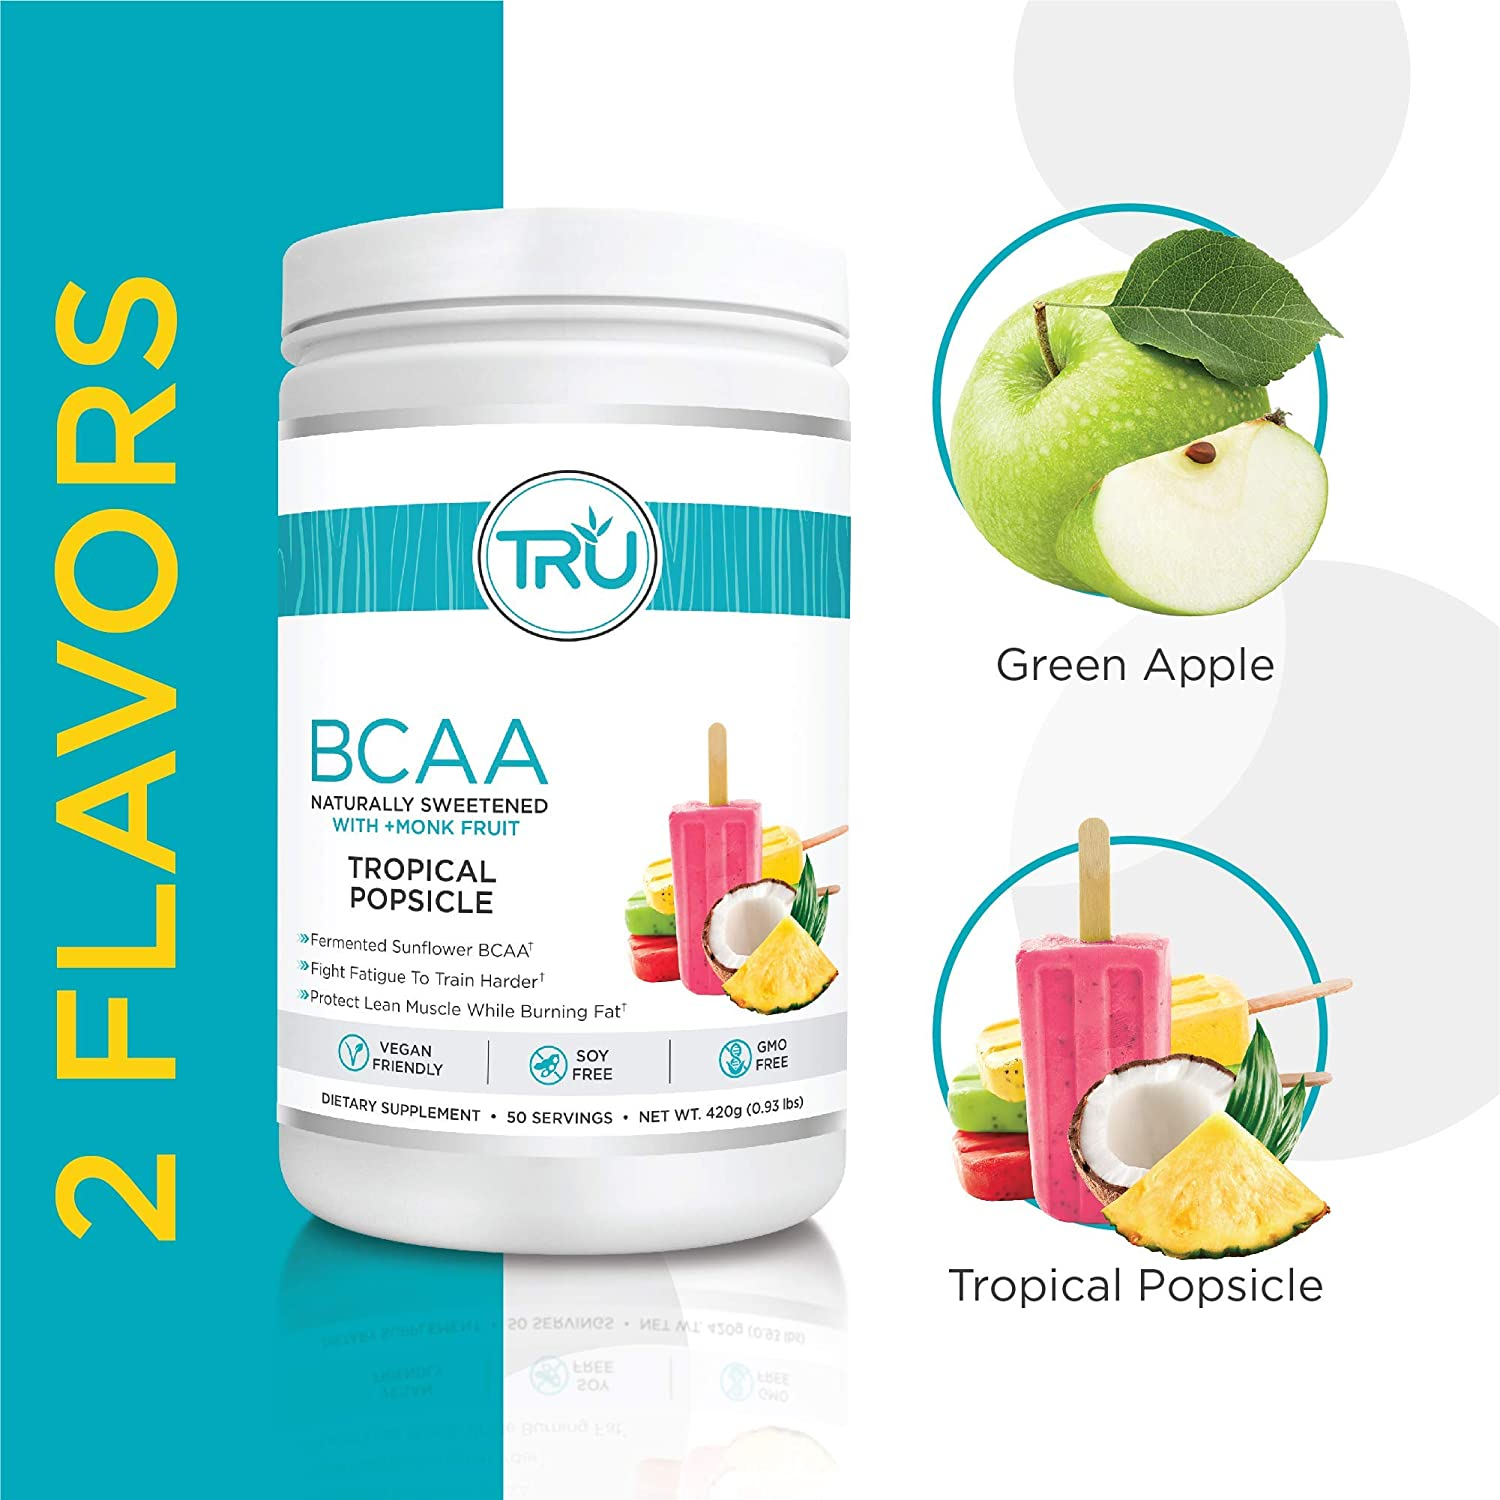 TRU BCAA, Plant Based Branched Chain Amino Acids, Vegan Friendly, Zero Calories, No artificials sweeteners or Dyes, Improve Fat Loss, 50 Servings Tropical Popsicle